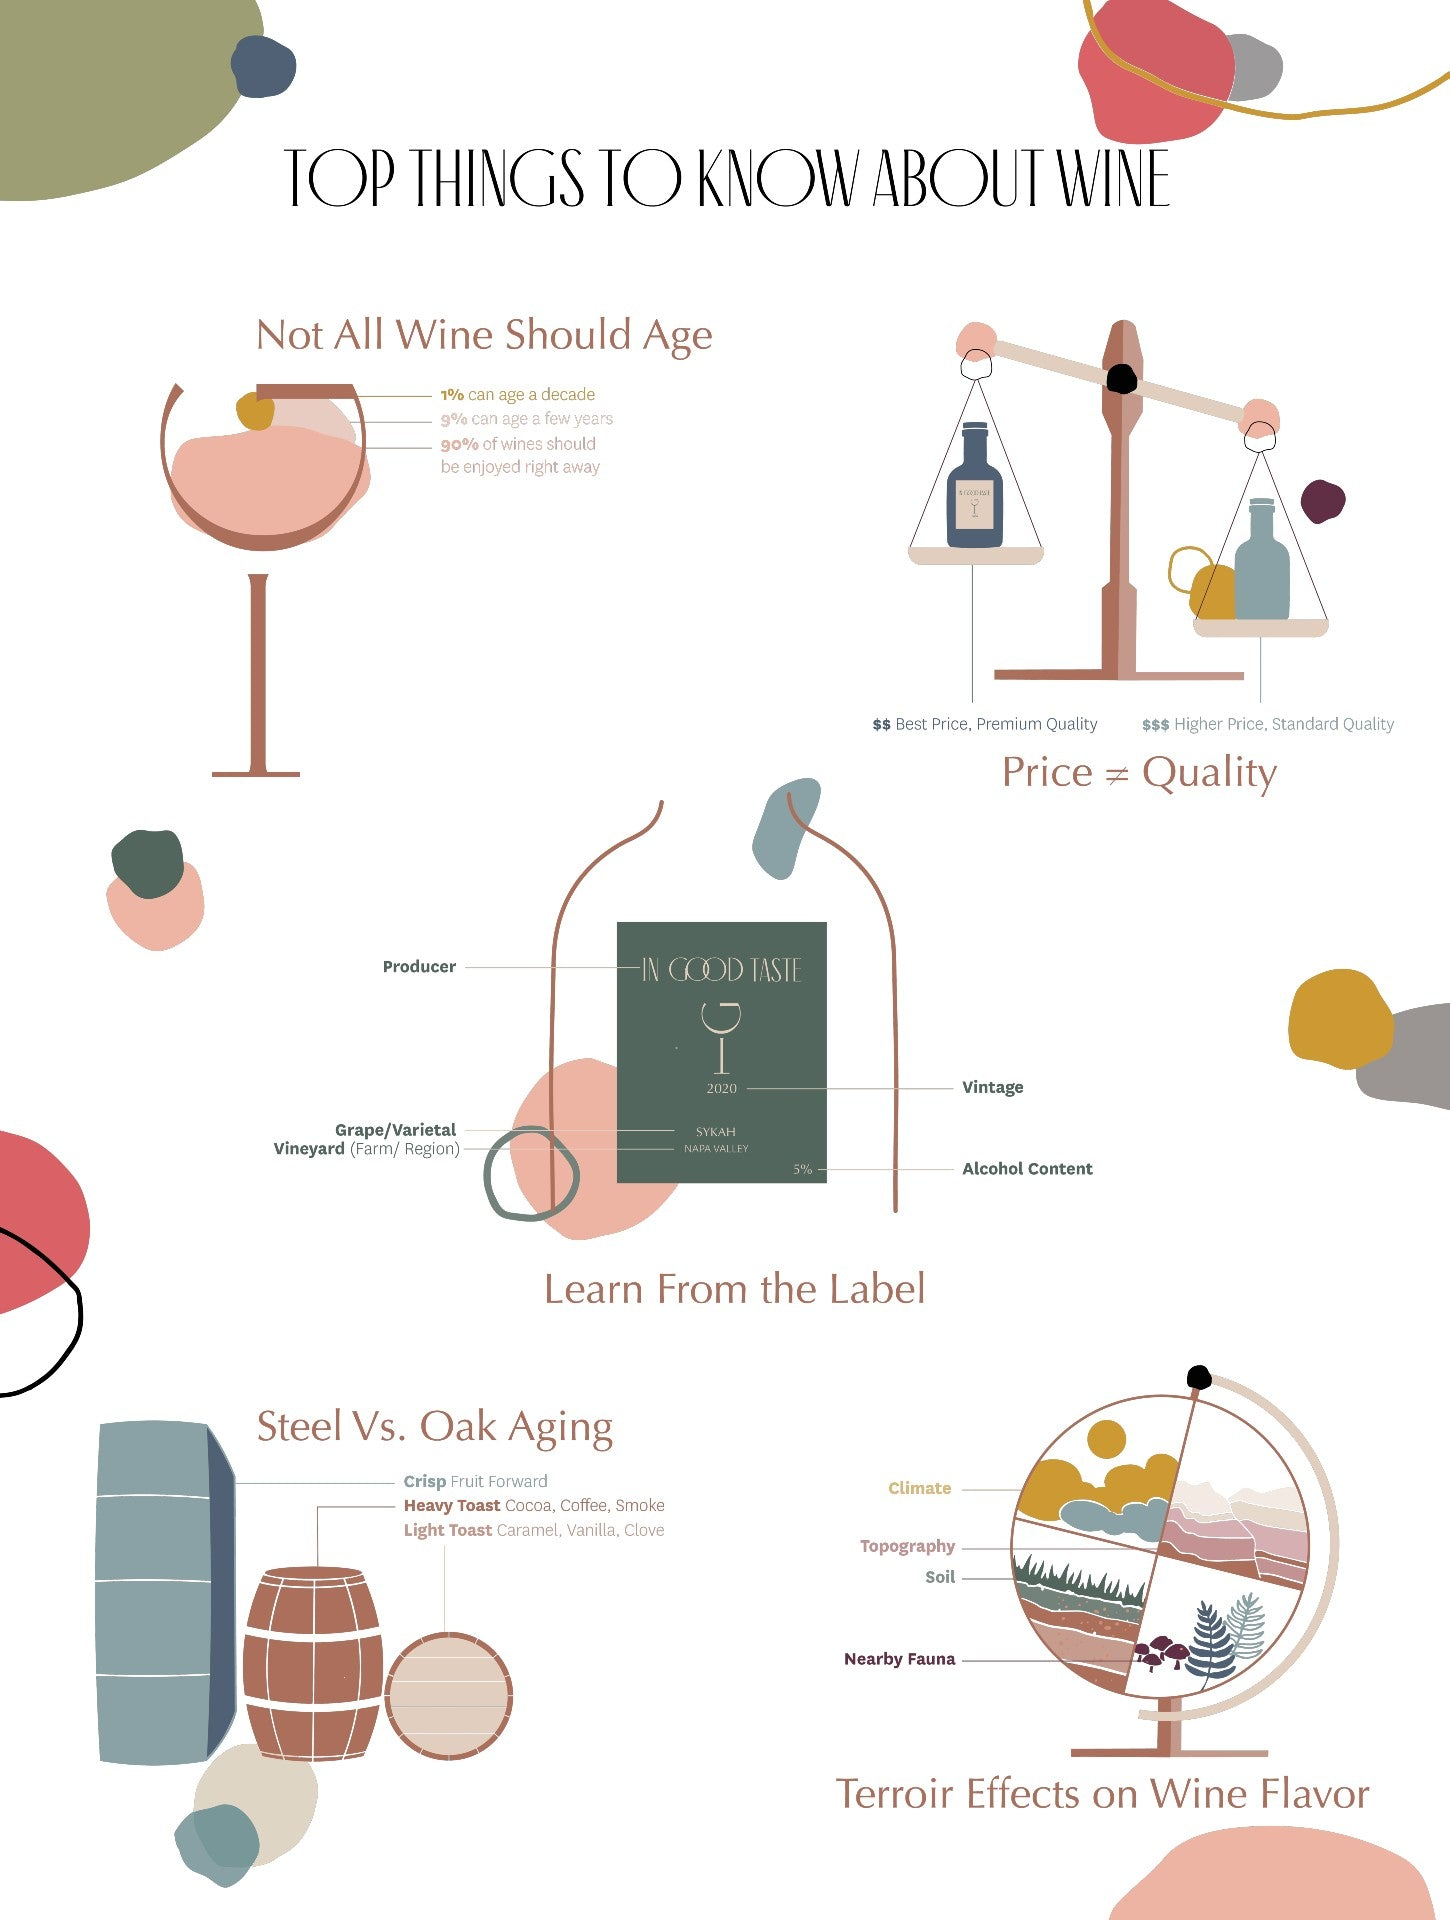 Things to Know About Wine, Infographic | In Good Taste Wines